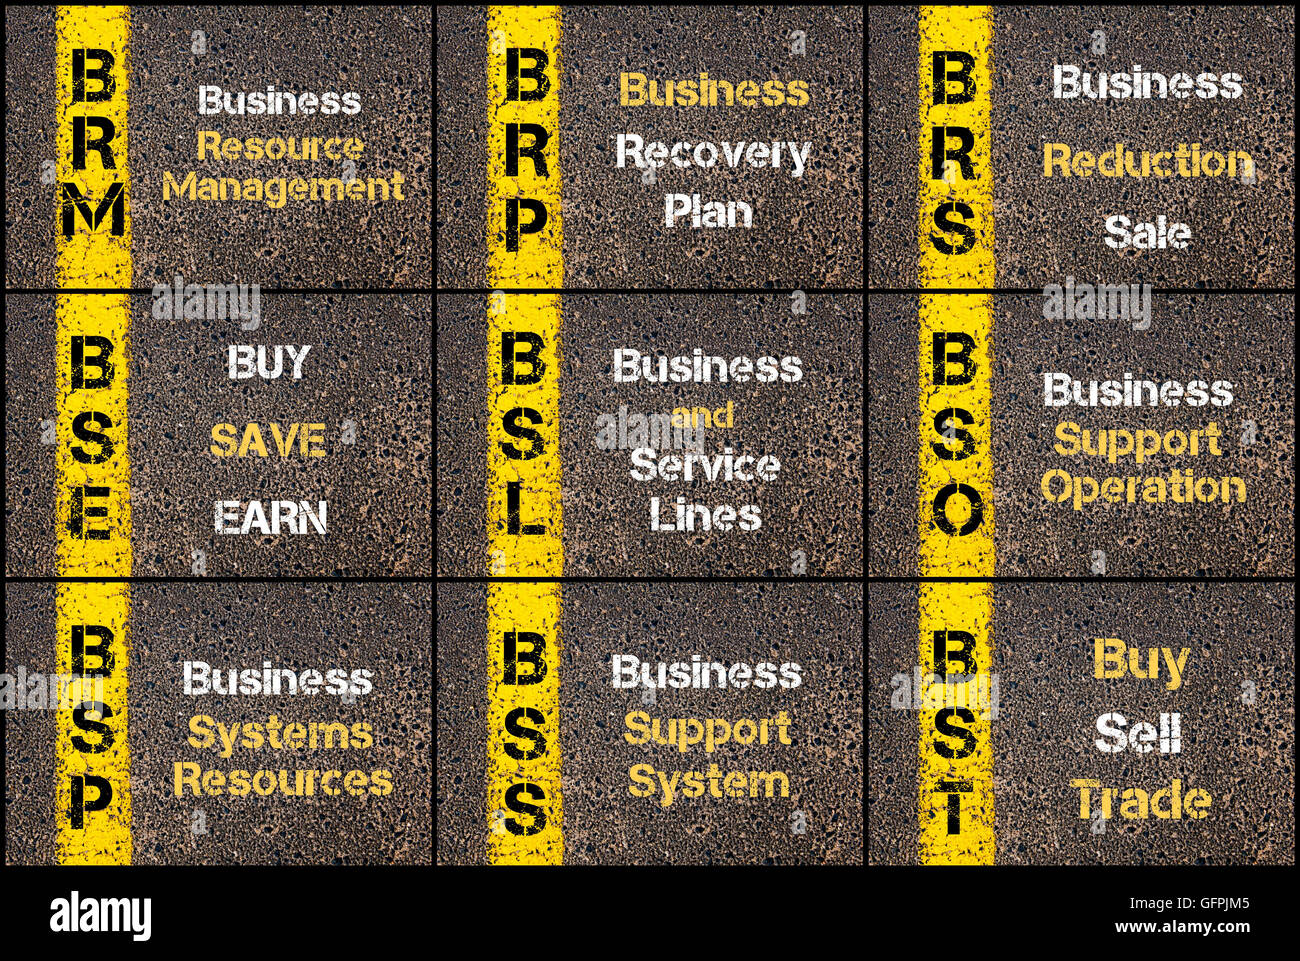 Photo collage of Business Acronyms written over road marking yellow paint line. BRM, BRP, BRS, BSE, BSL, BSO, BSP, - Stock Image